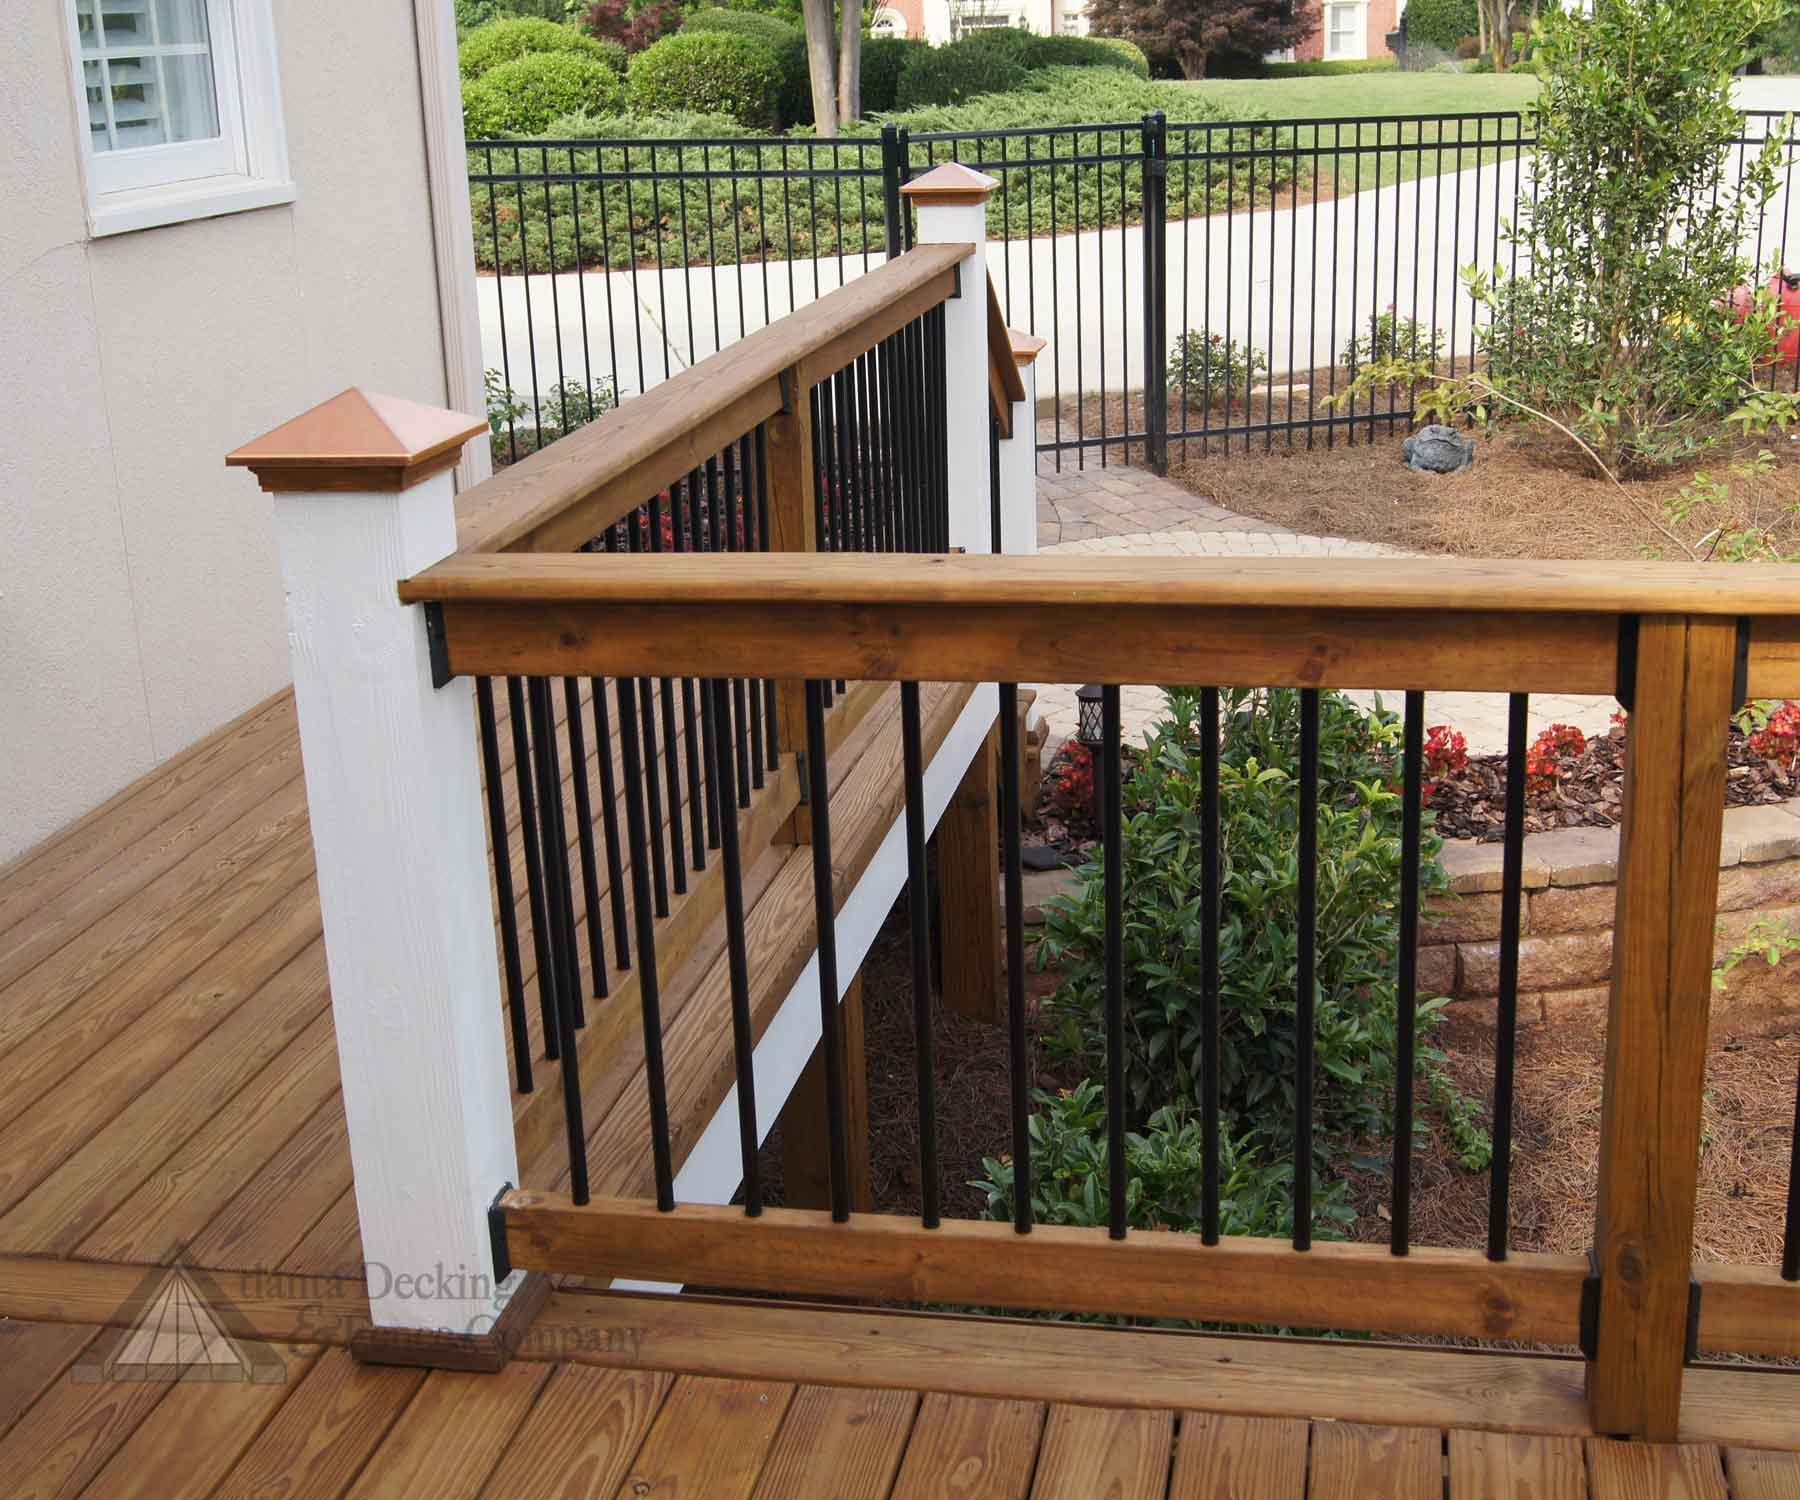 Wallpaper Deck Railing Ideas